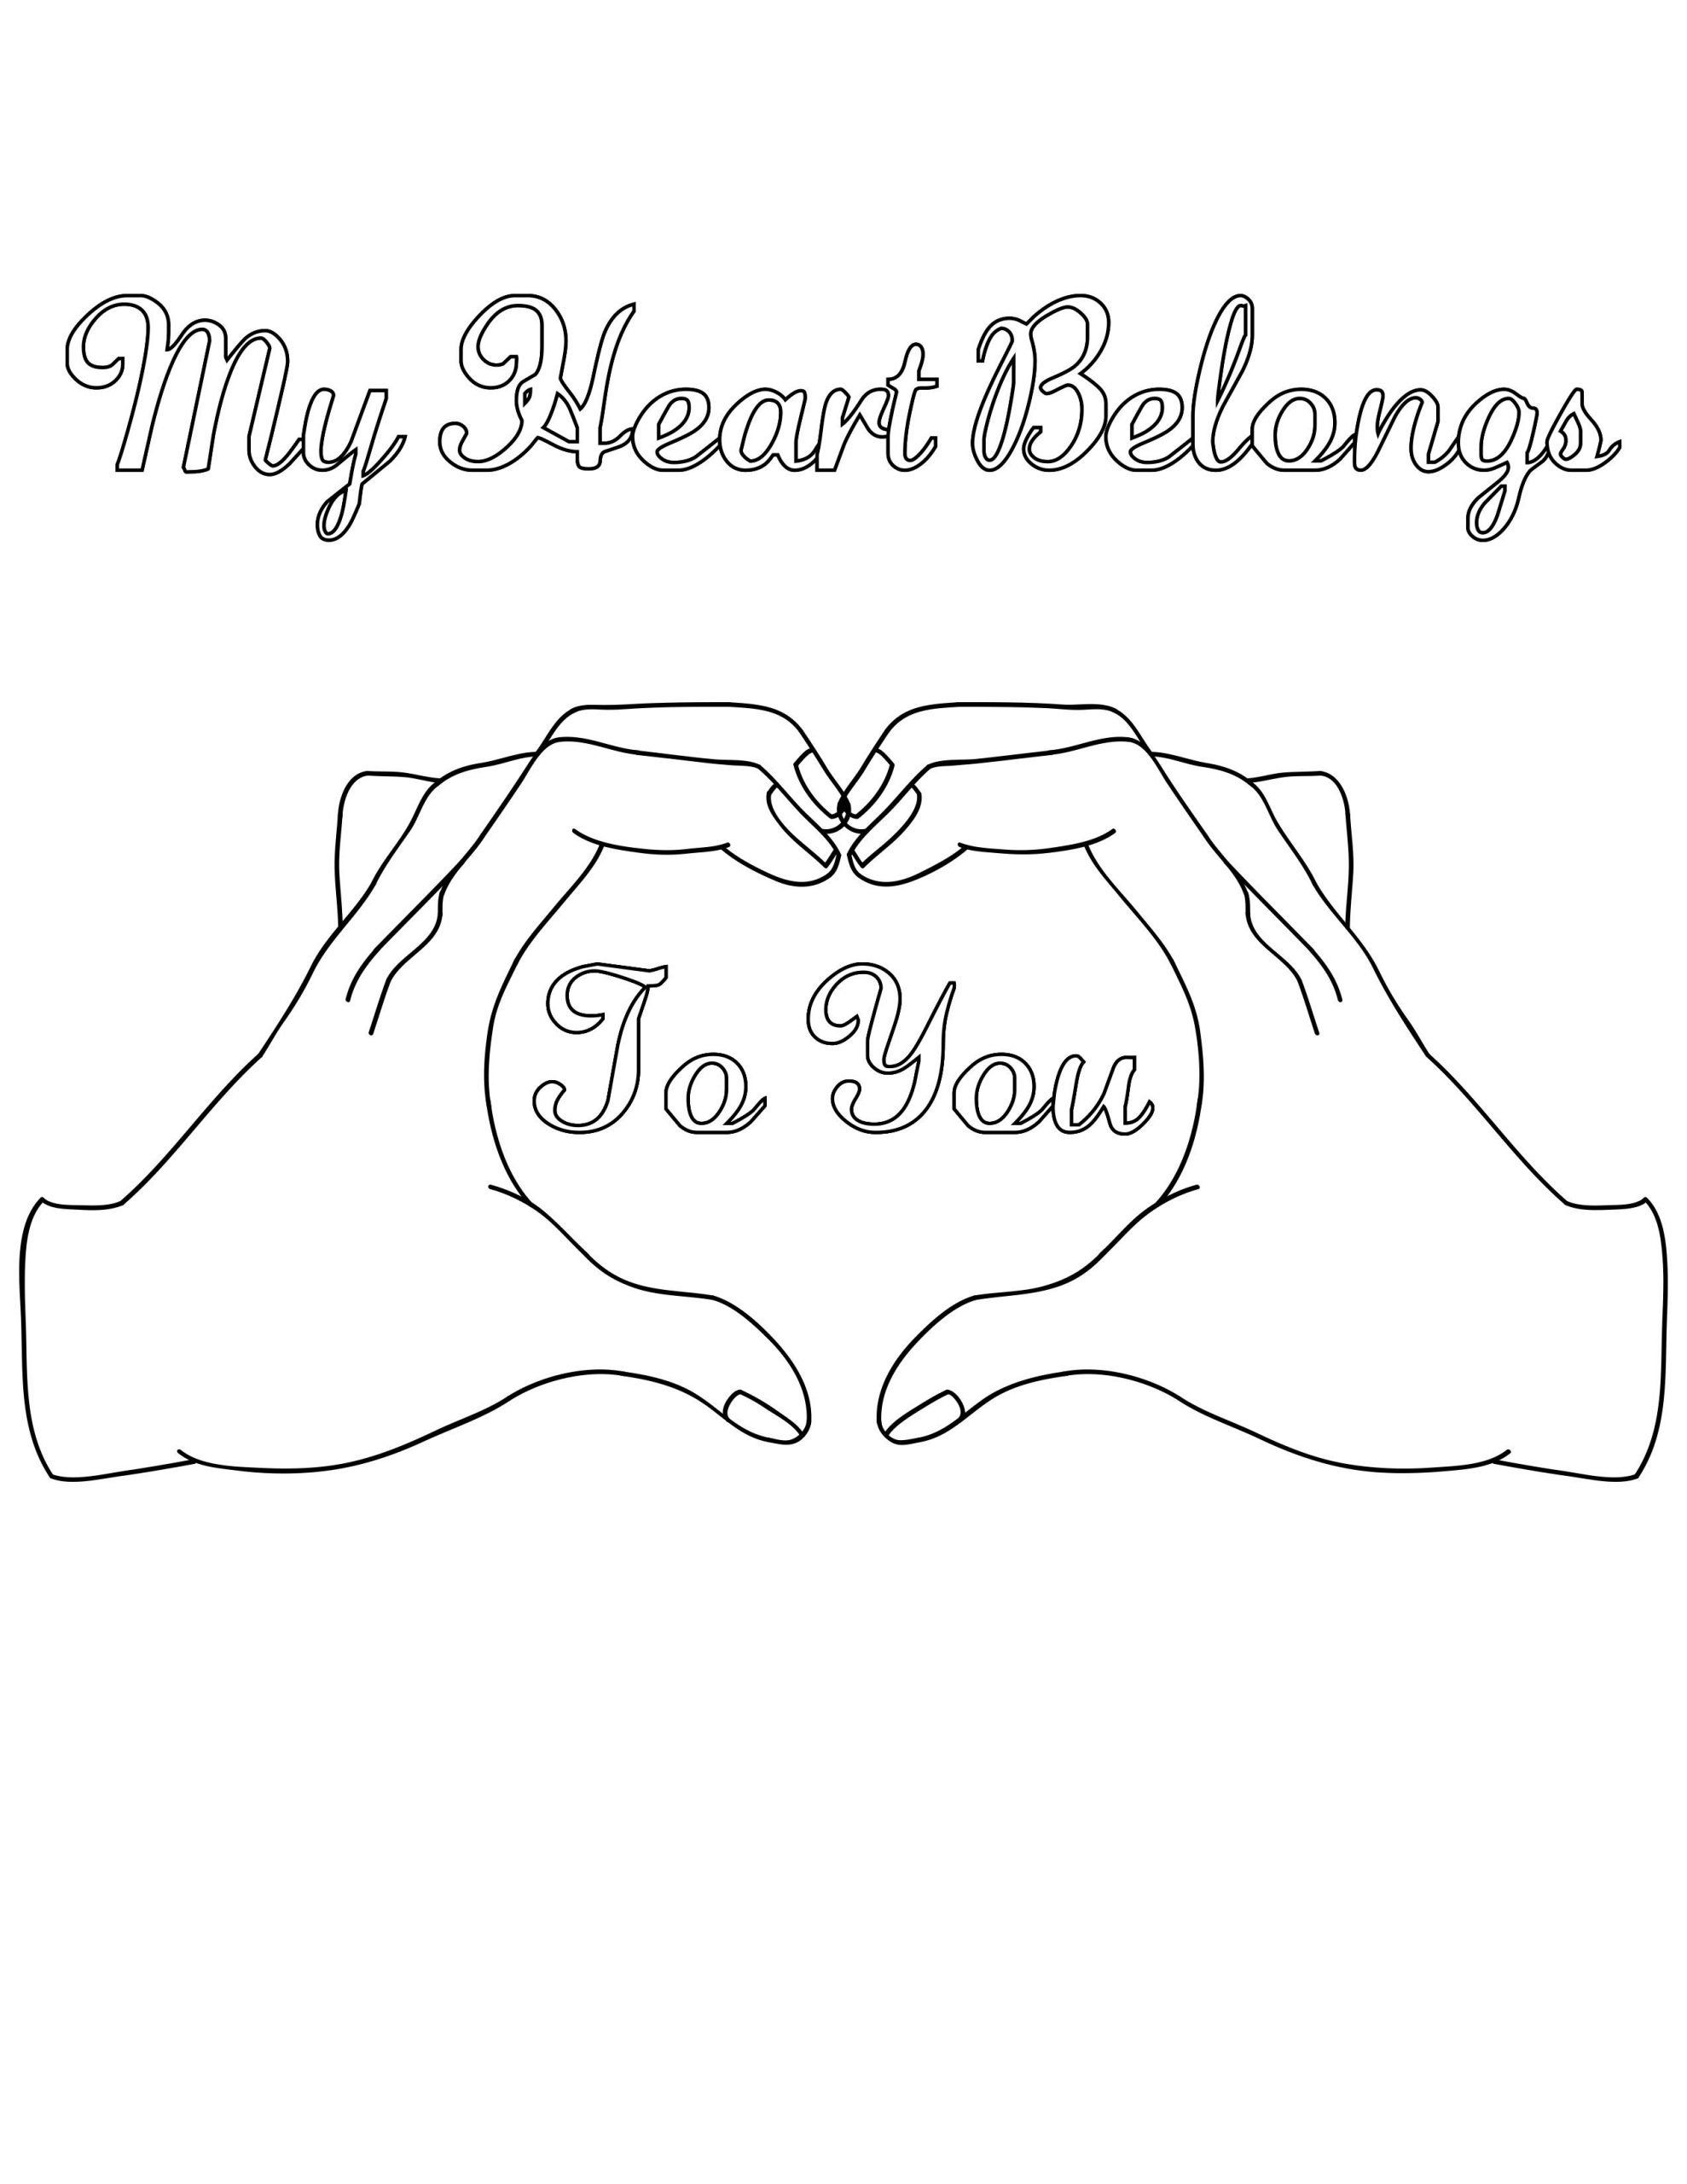 Cute Love Coloring Pages Pin By Coloring Pages For Adults On Hearts Love Coloring Quote Coloring Pages Love Coloring Pages Heart Coloring Pages